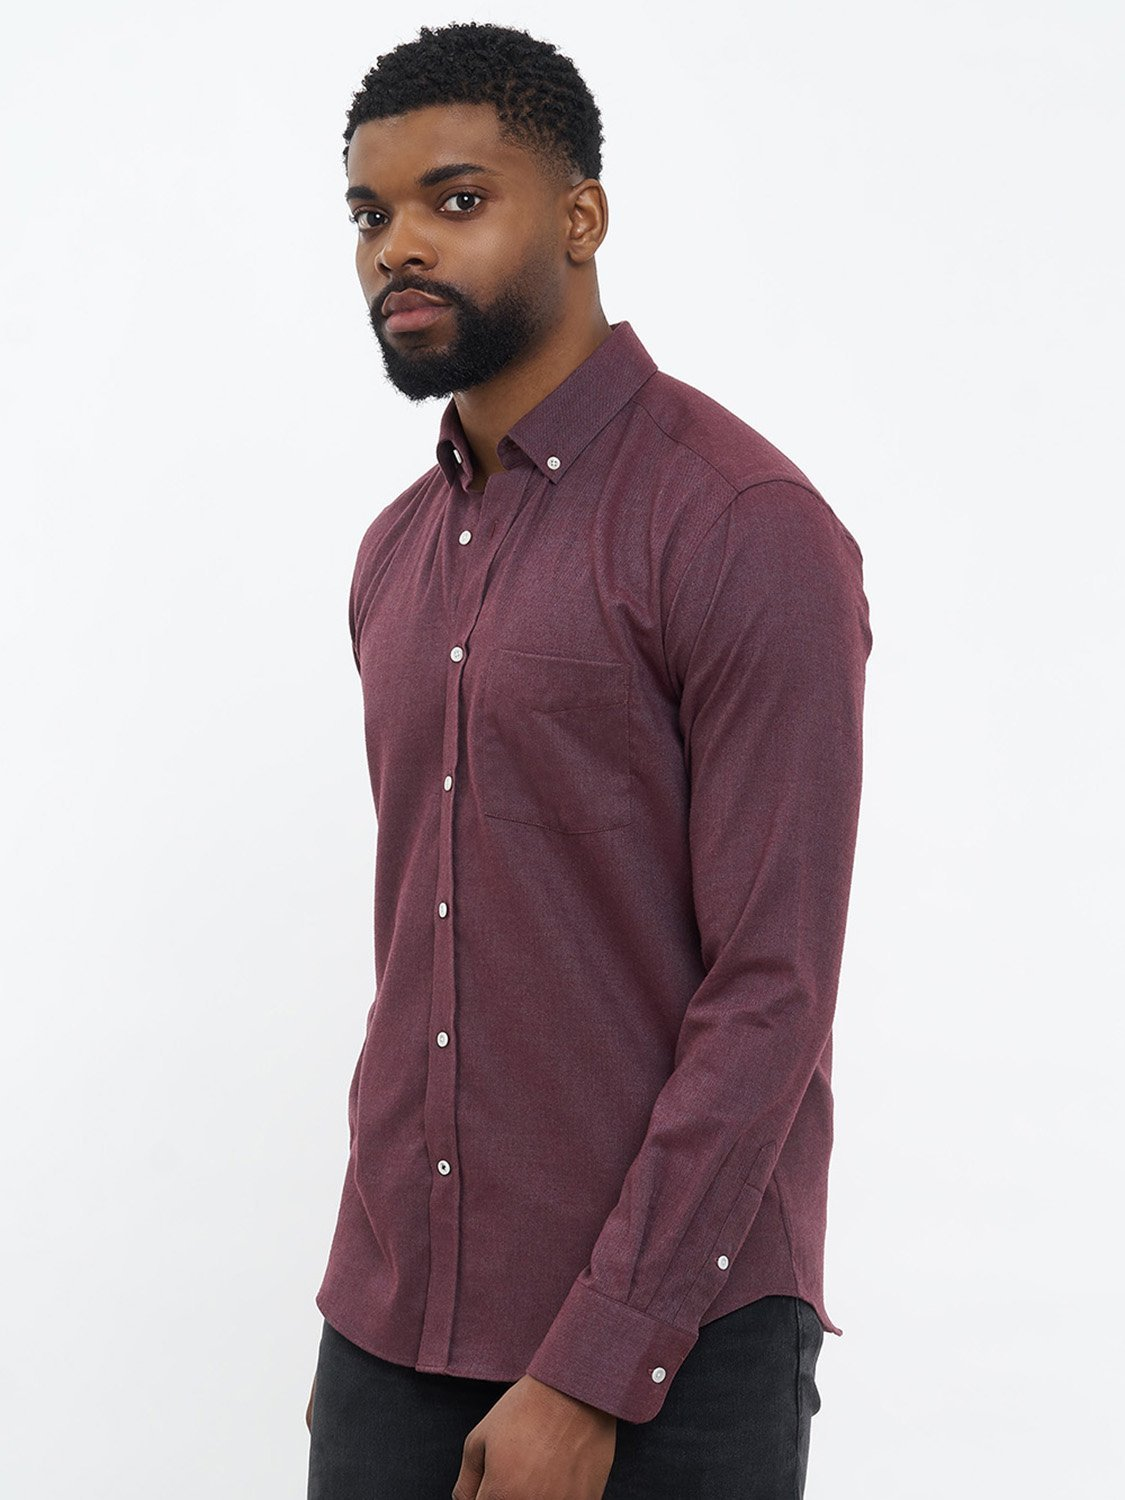 carpasus sustainable organic cotton flanell shirt populus bordeaux. Nachhaltiges Carpasus Flanell Hemd Populus Bordeaux aus Bio Baumwolle